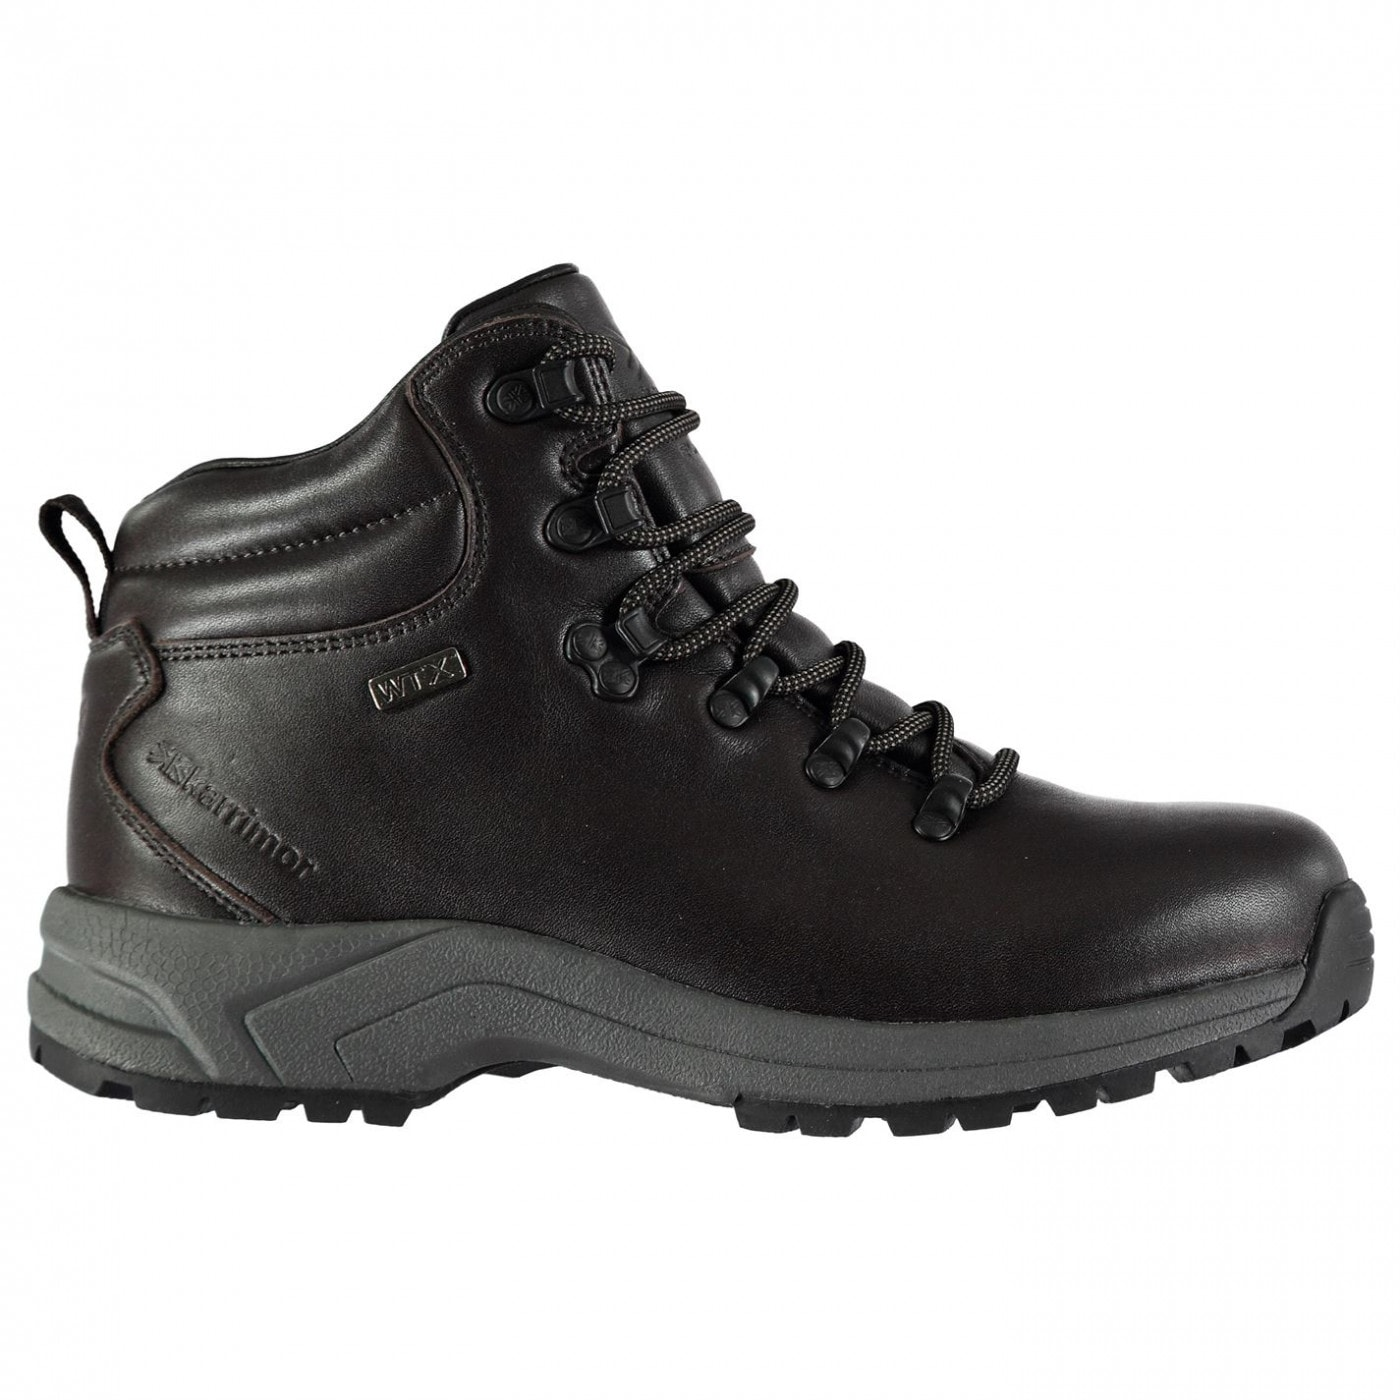 Karrimor Batura WTX Ladies Walking Boots